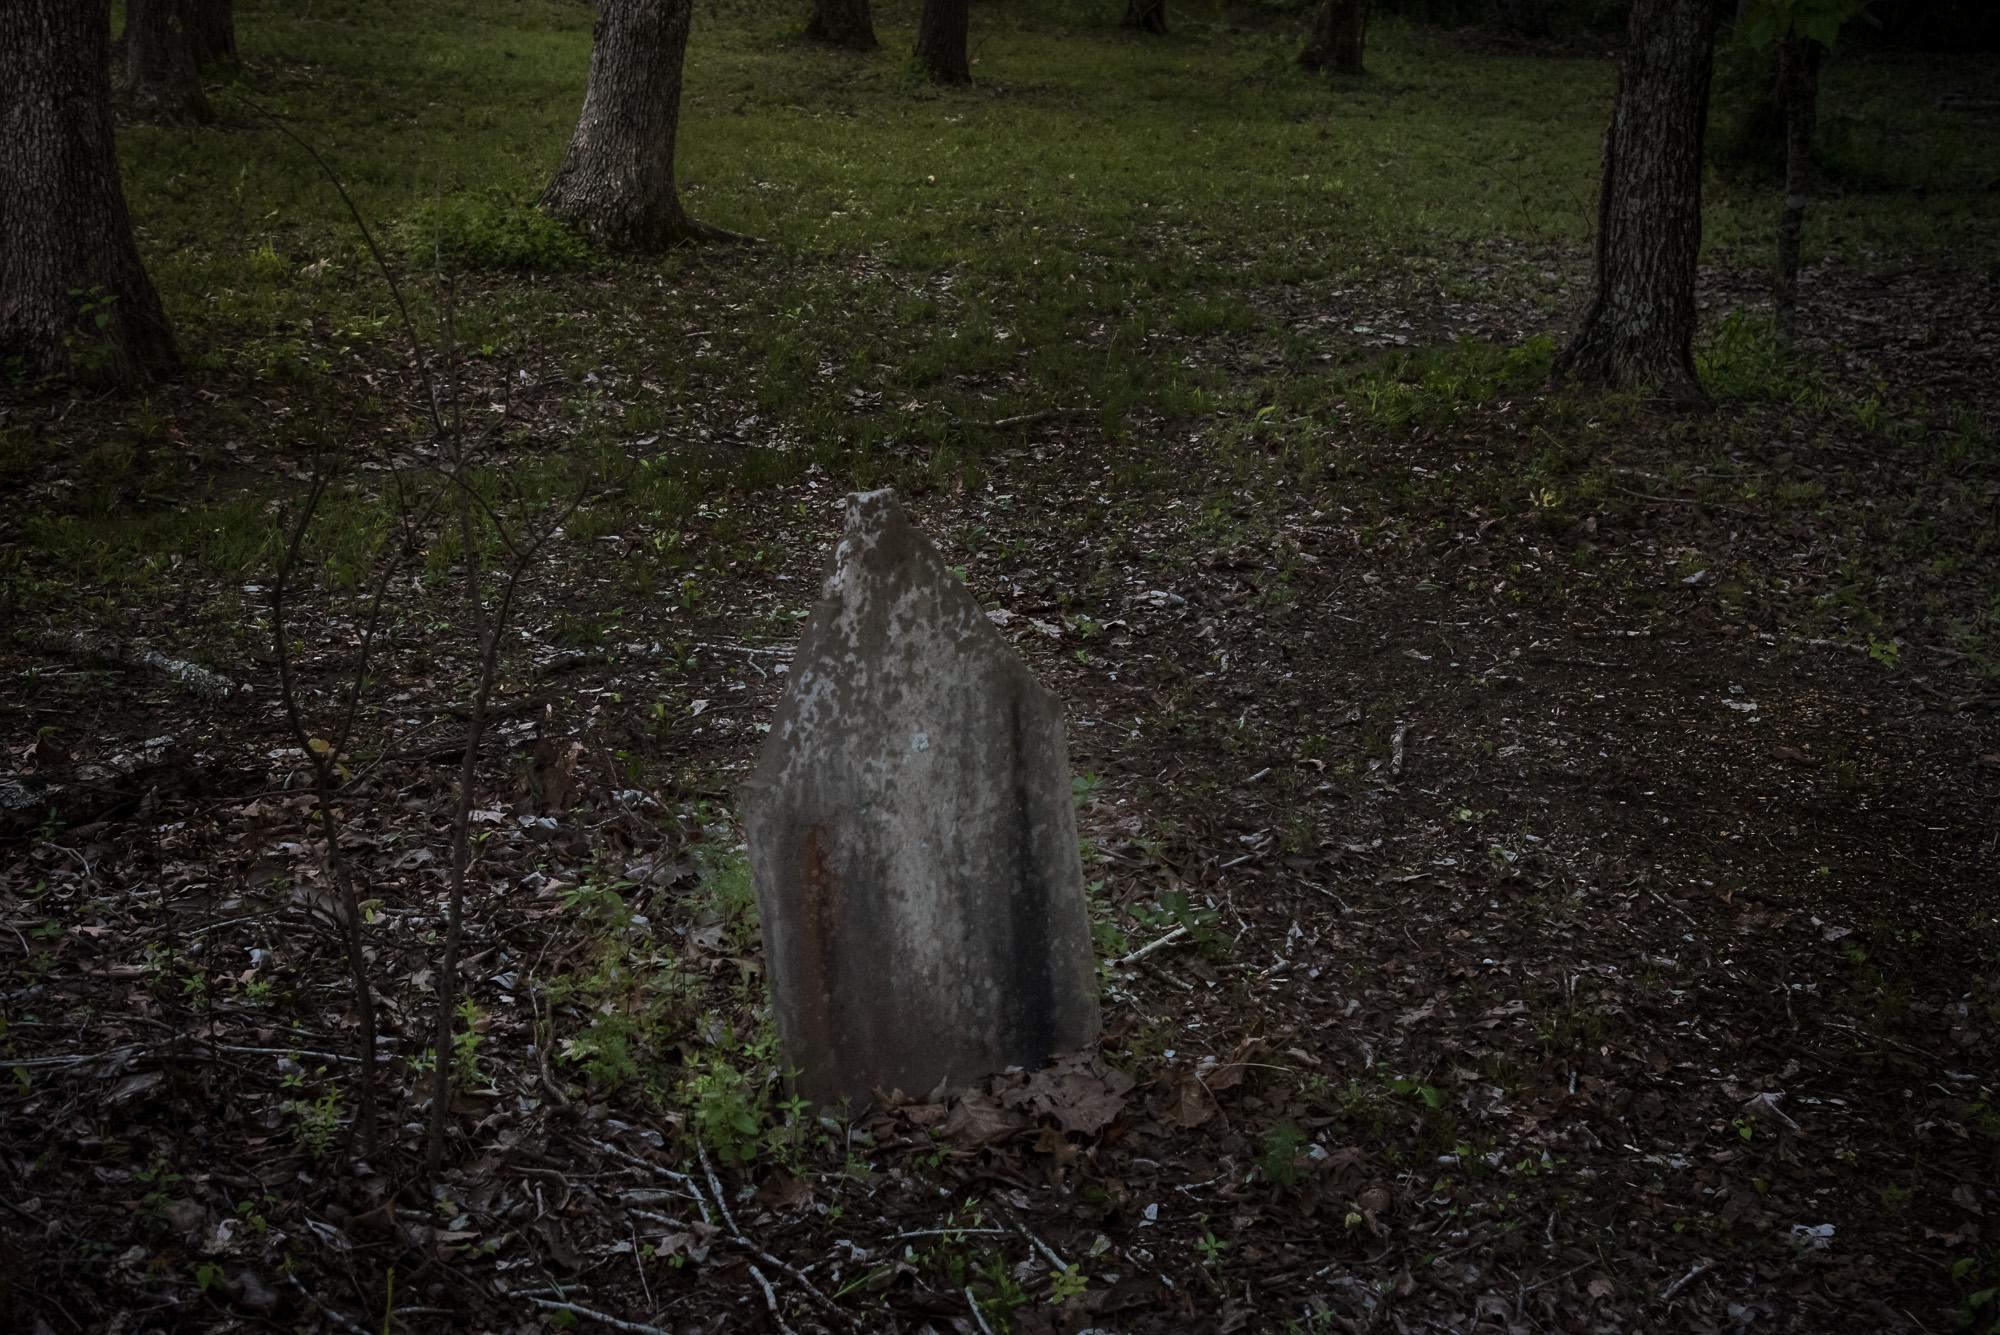 Slave Cemetery, Faunsdale, Alabama